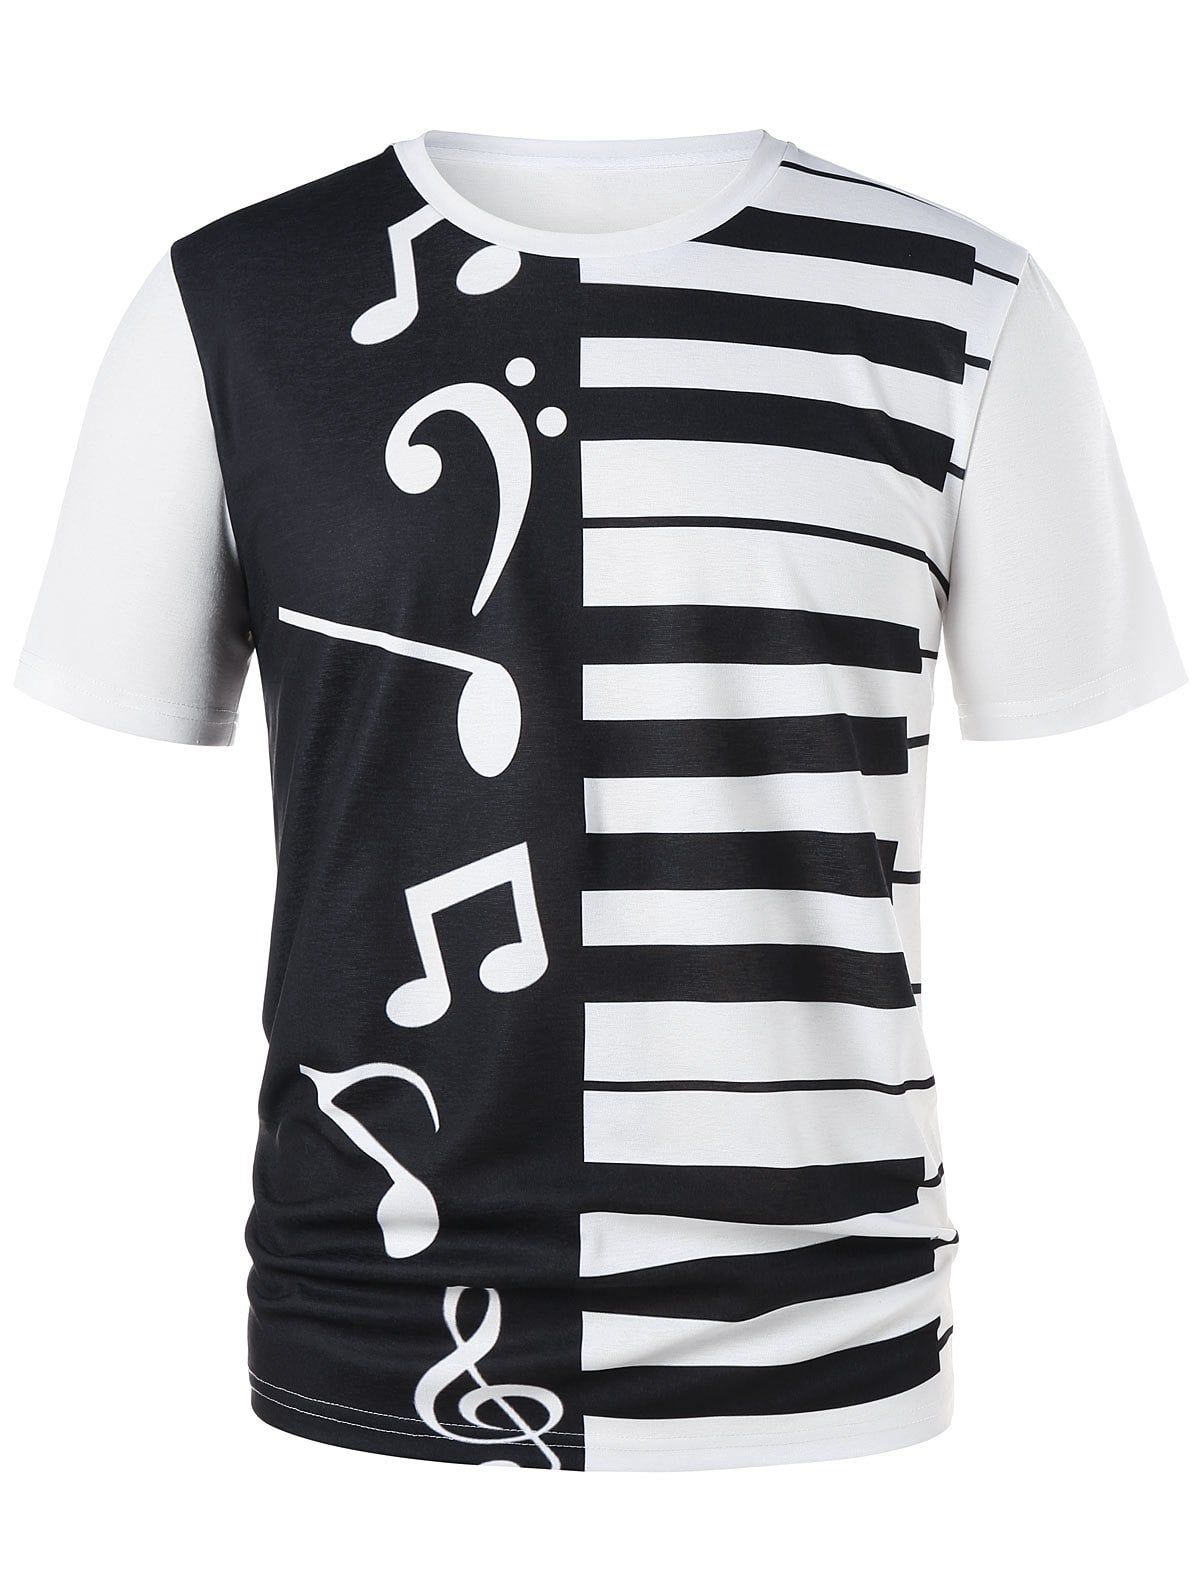 ed8ab1d6a Piano Keys Notes Print Graphic Tee Piano Keys Notes Print Graphic Tee  price:19.24